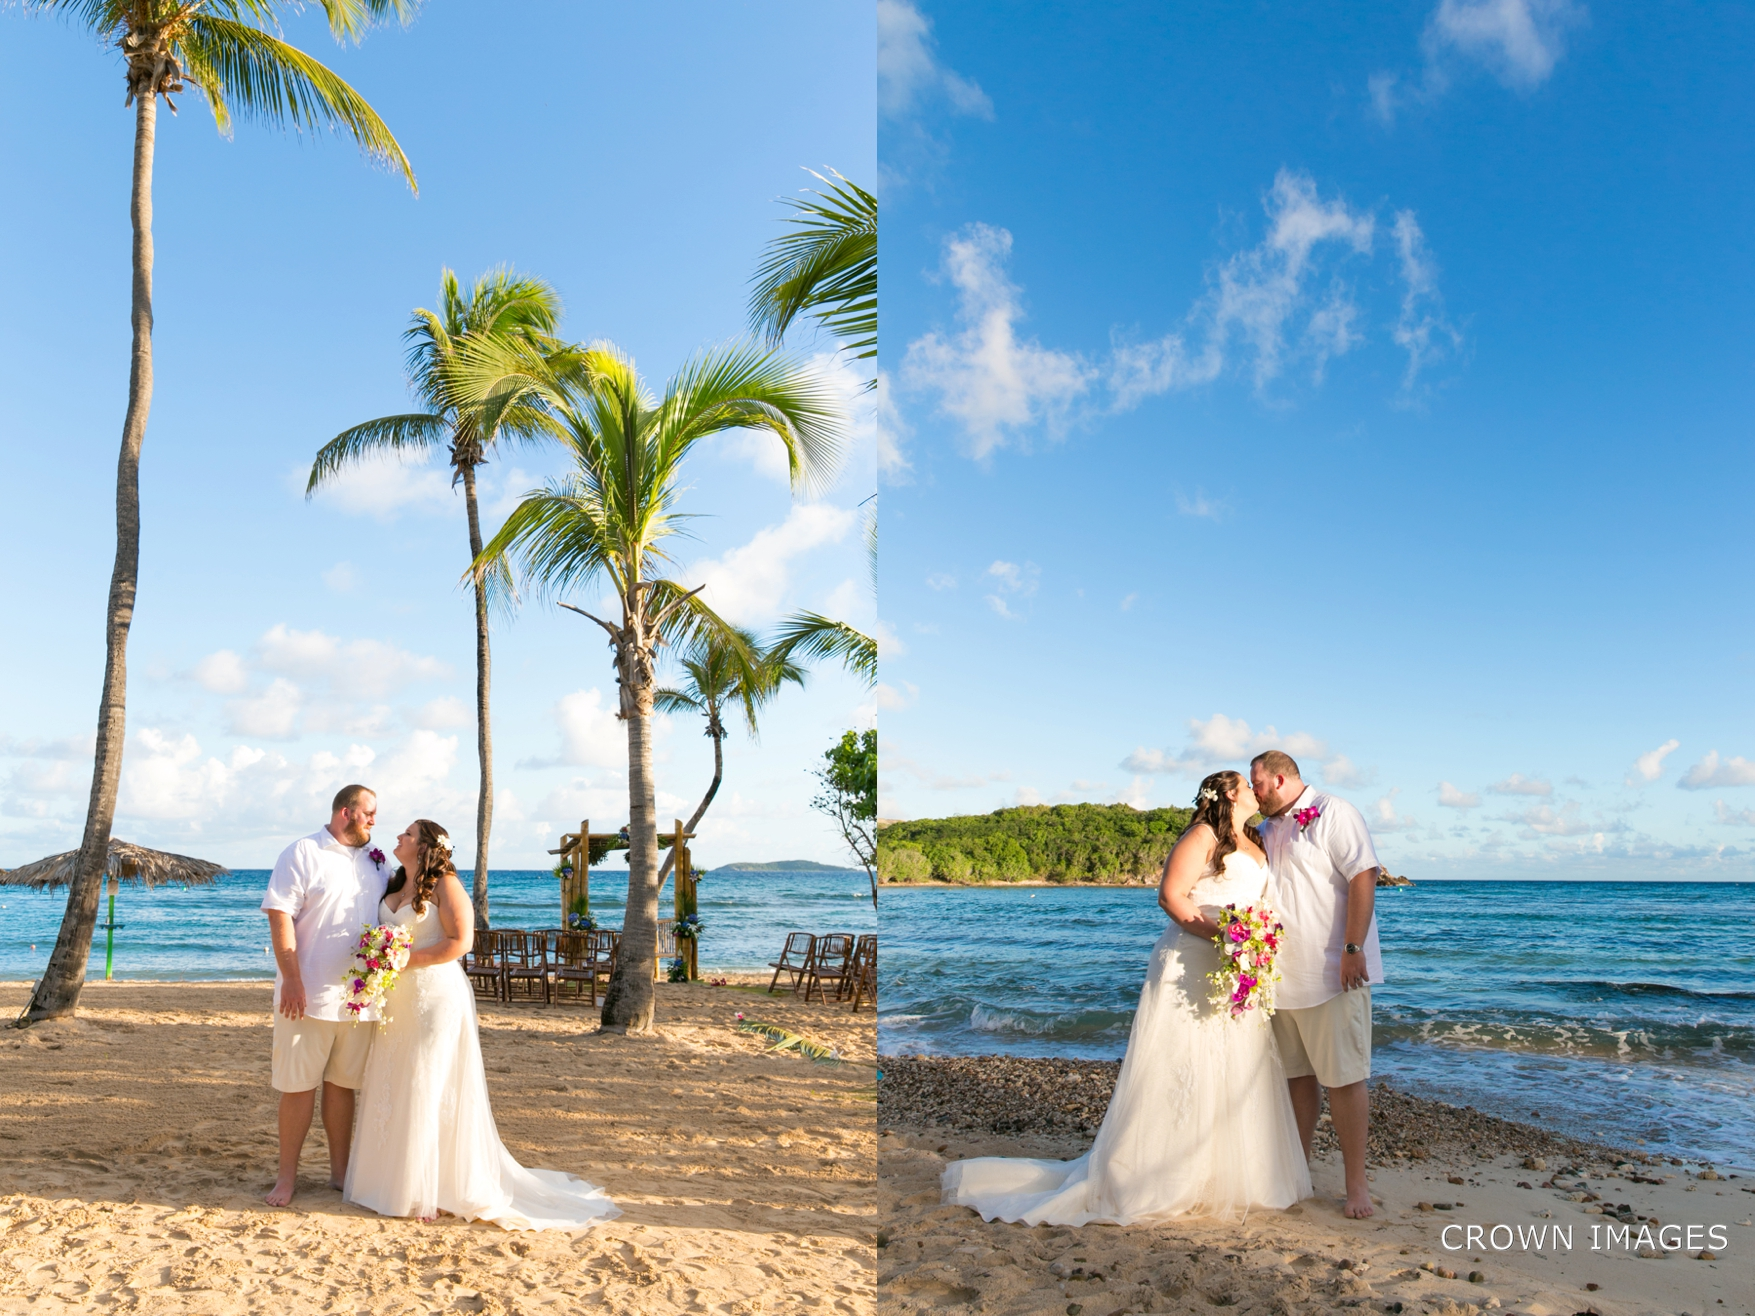 wedding_st_thomas_bolongo_beach_crown_images_0291.jpg